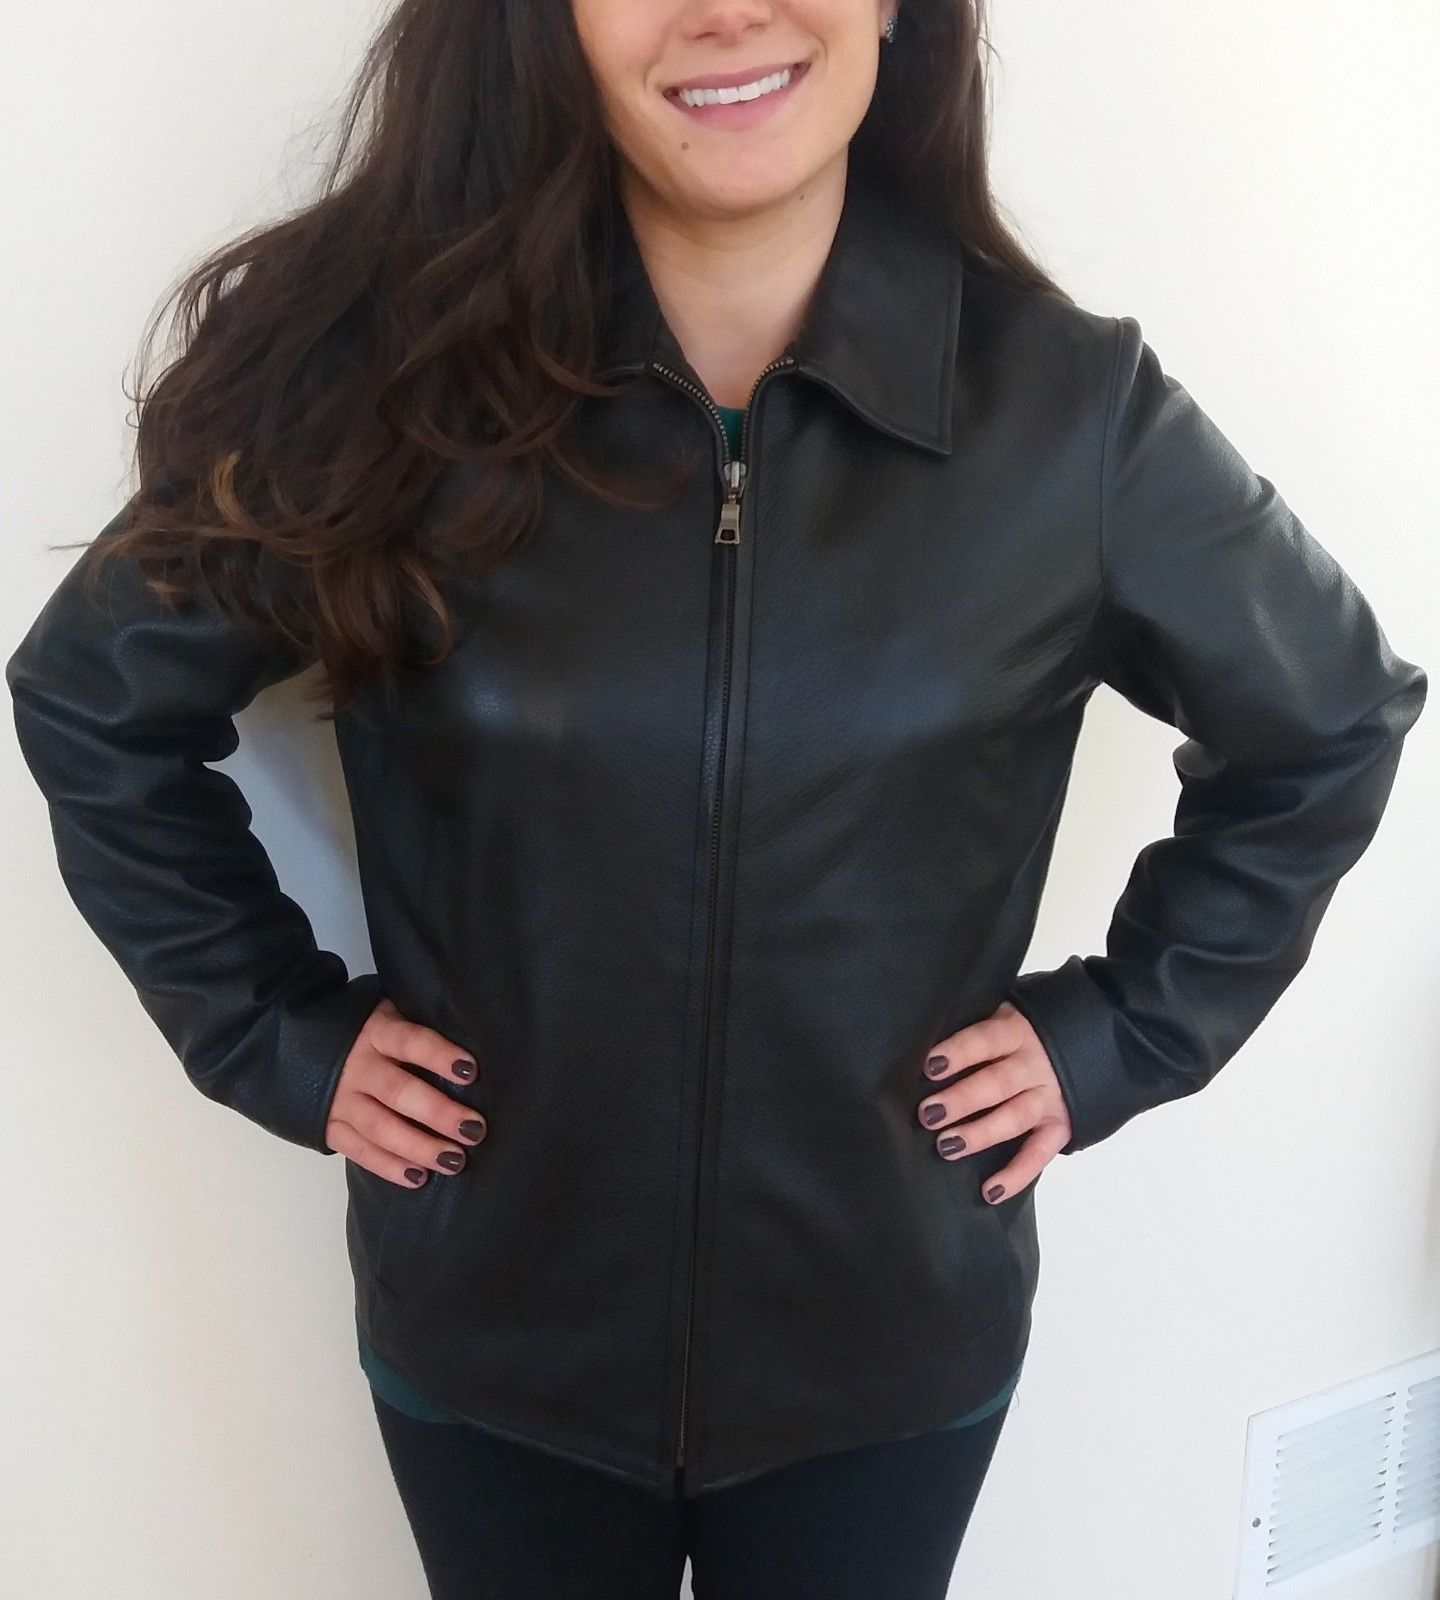 Ladies Eddie Bauer Black Leather Jacket M Medium Lined Short Coat Aviator Womens